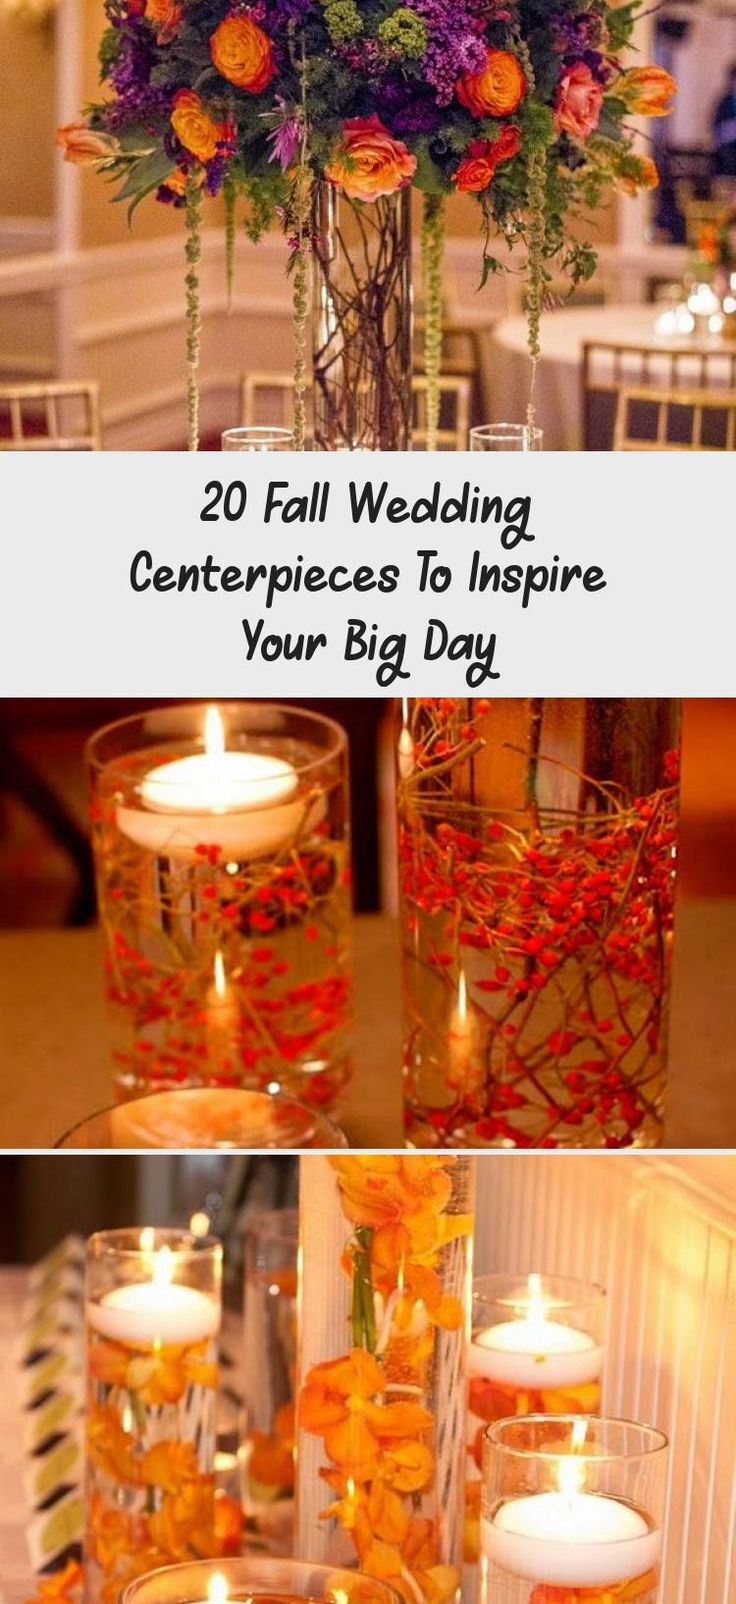 Jan 28, 2020 - vintage fall colorful wedding centerpiece #wedding #weddingideas #weddingcenterpieces #fallweddings #hmp